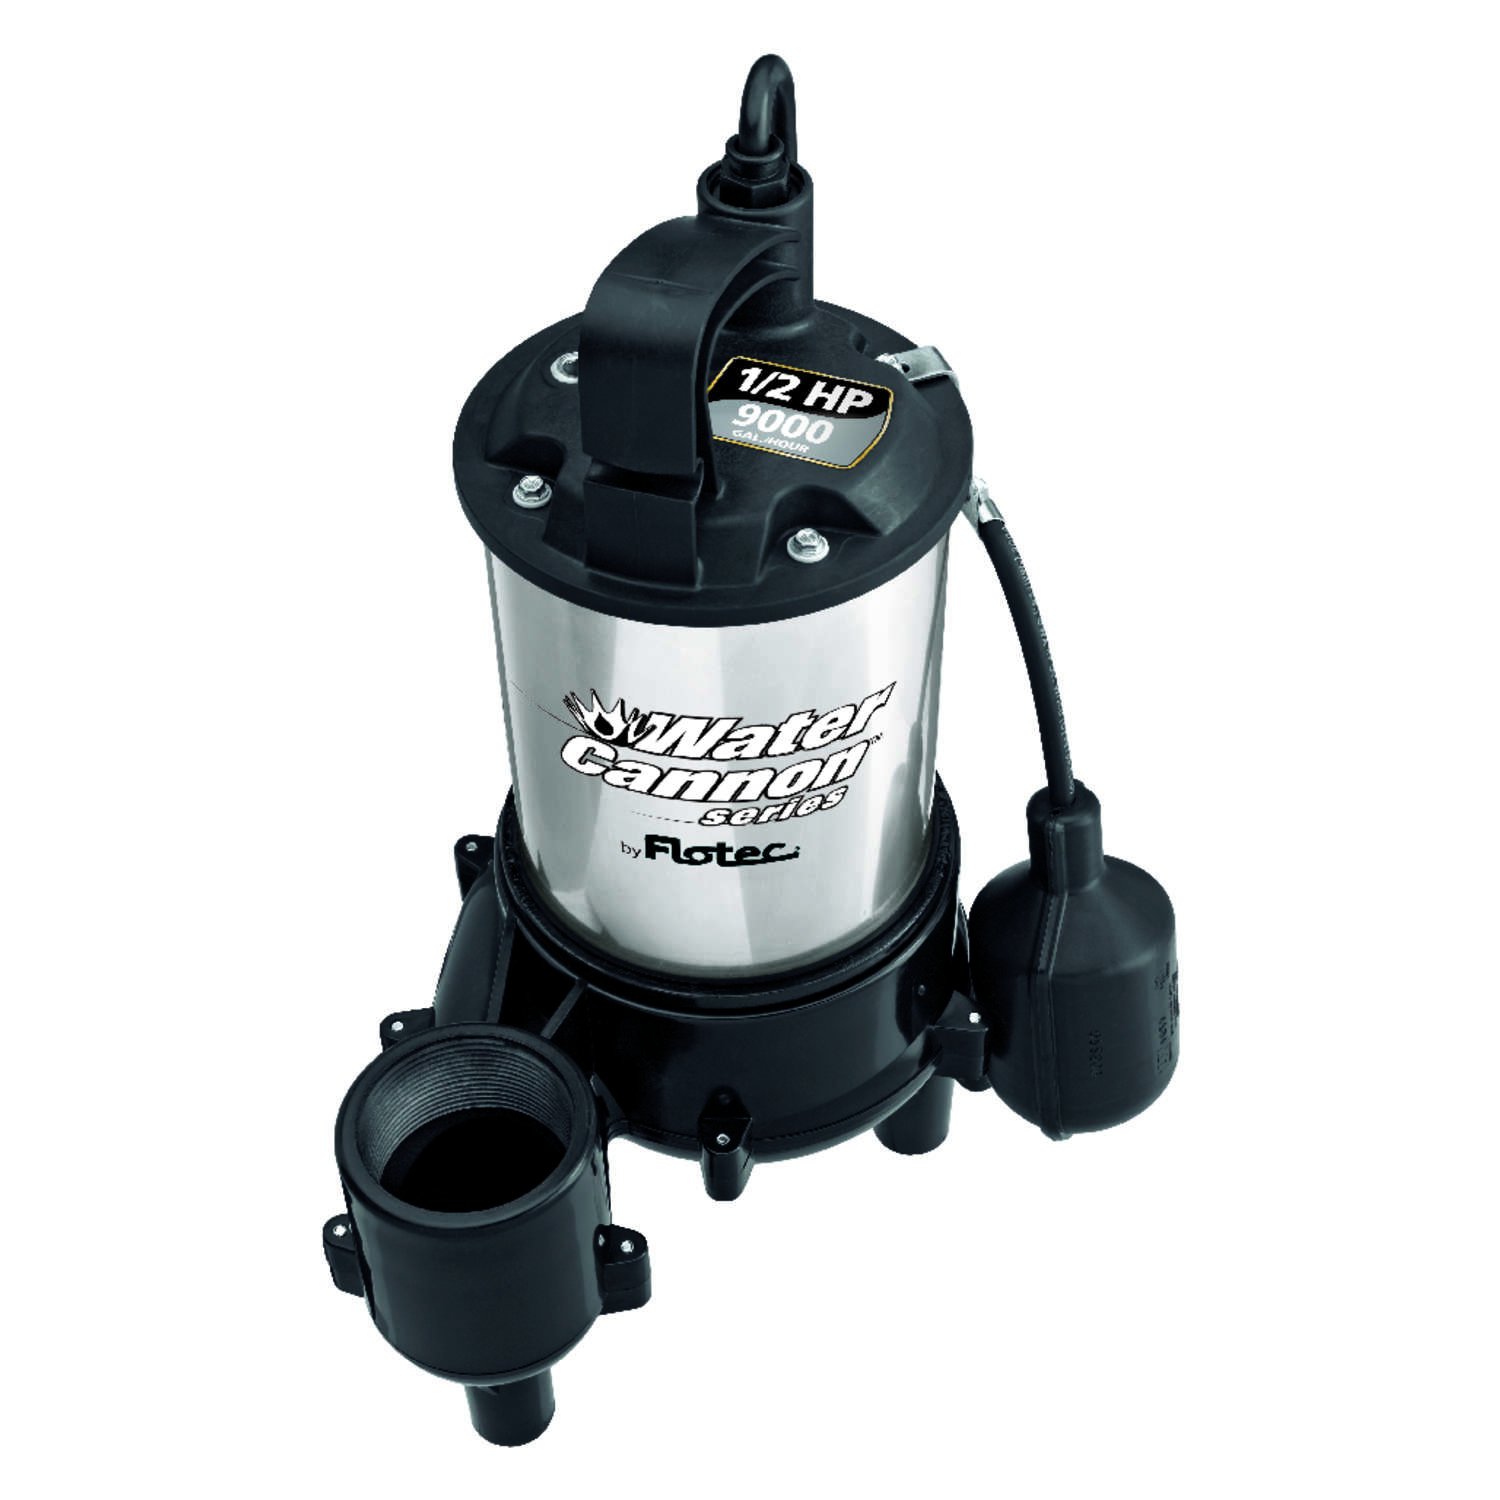 Flotec  Water Cannon Series  1/2 hp 9,000 gph Stainless Steel  Tethered  Sewage Pump